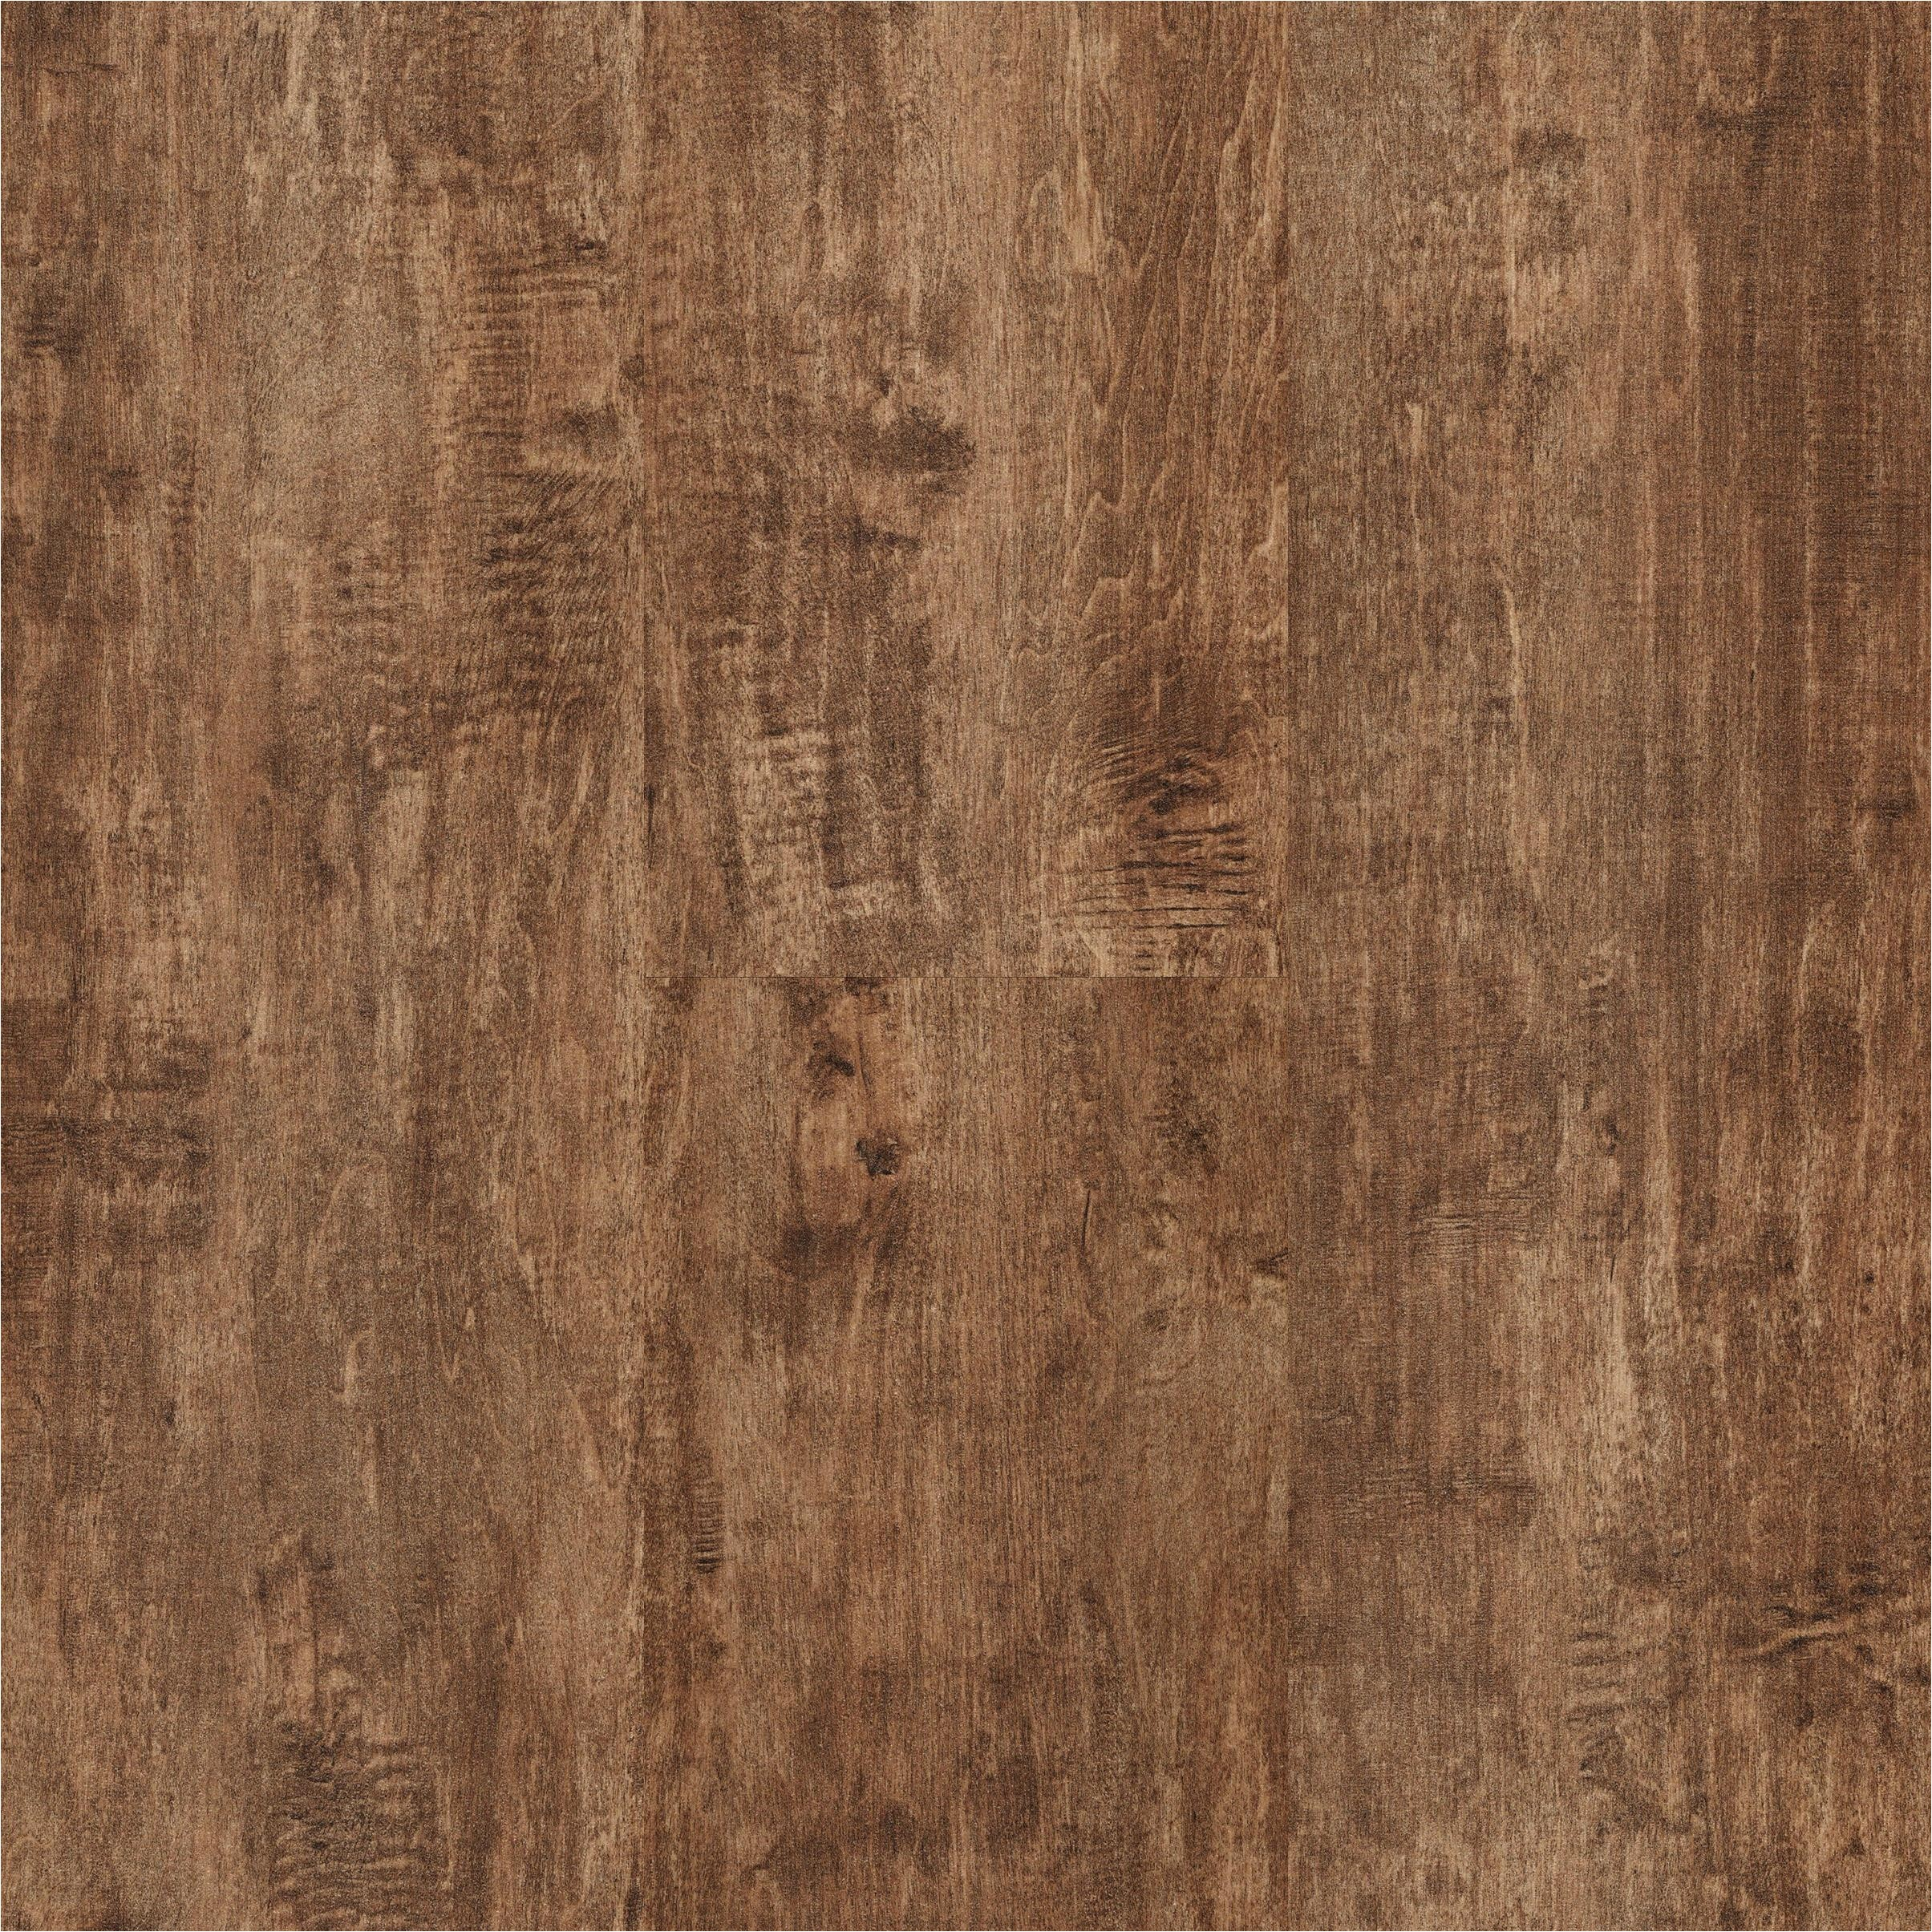 17068 premier glueless laminate flooring light maple